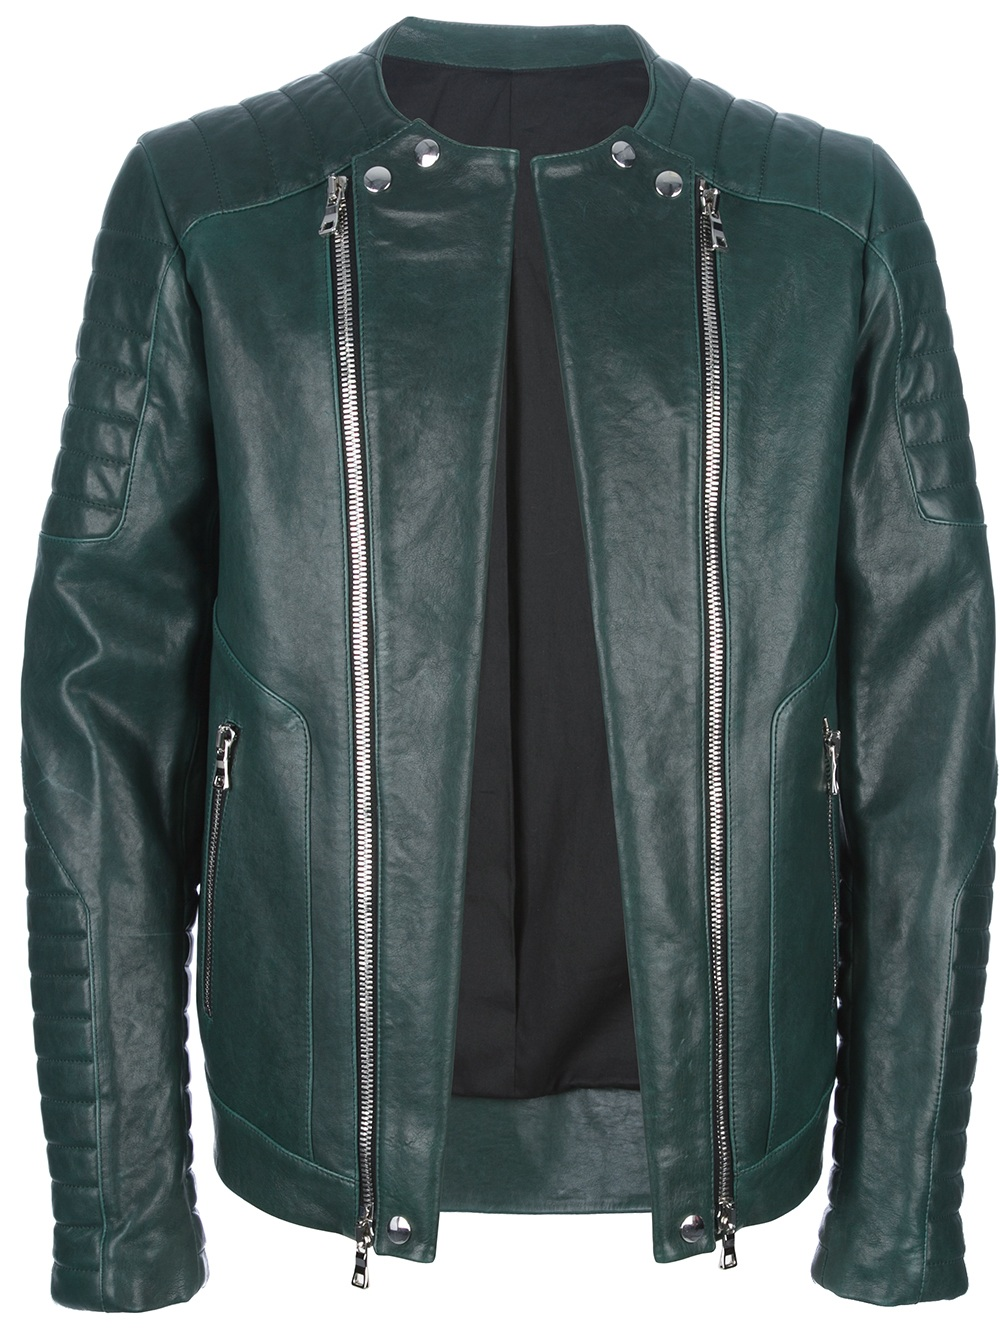 Balmain Biker Jeans Men | Leather Jacket Balmain | Balmain Leather Jacket